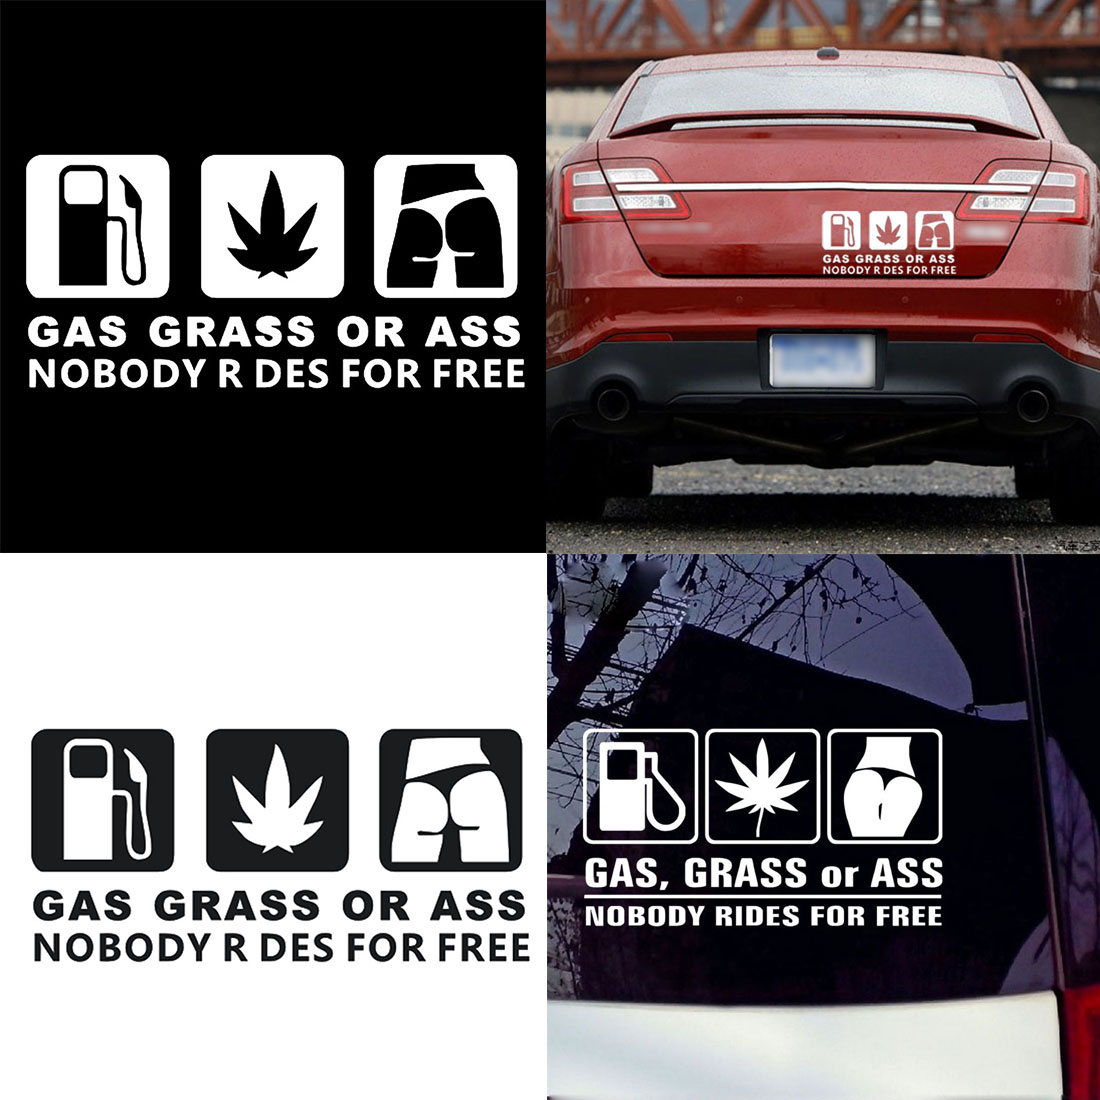 GAS GRASS OR ASS NOBODY RIDES FOR FREE Car Body Window Sticker Decal Decoration